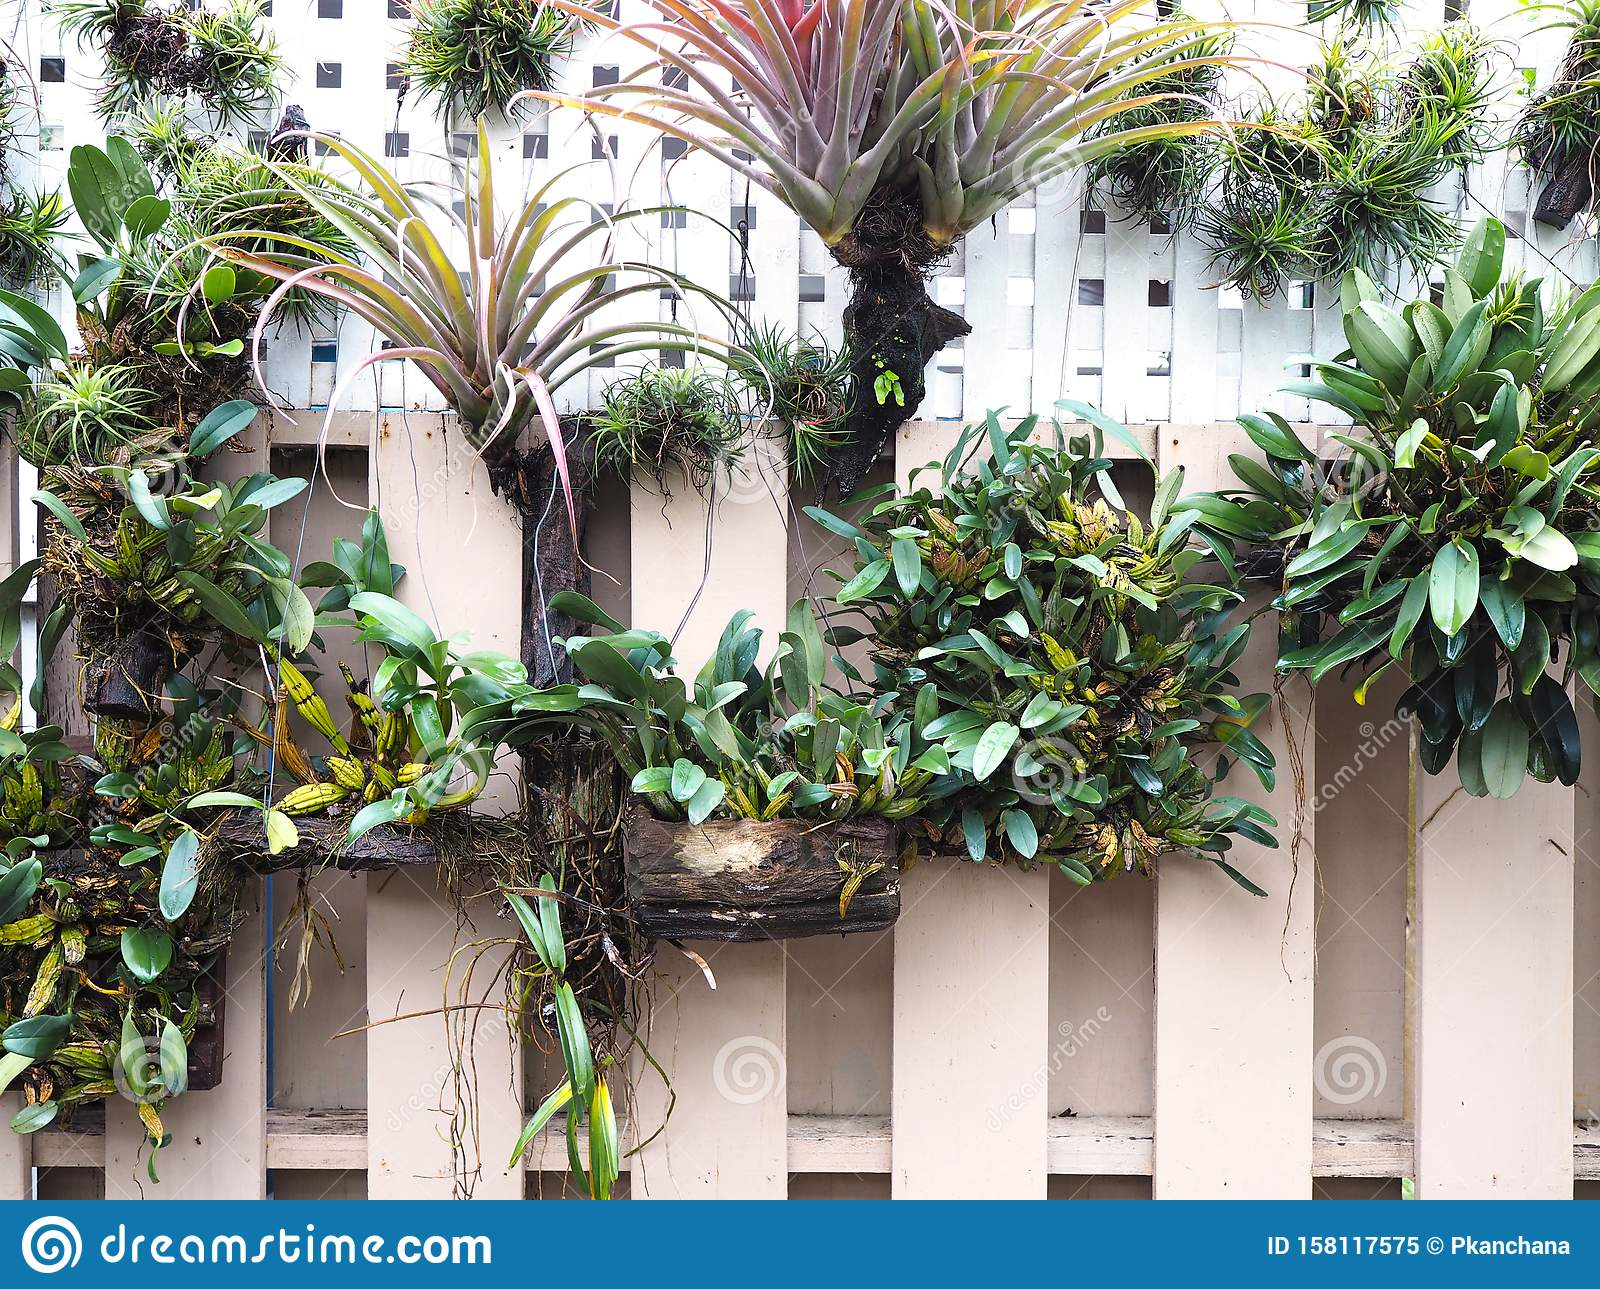 Vertical Garden Decoration On The Wall Stock Image Image Of Orchid Fresh 158117575